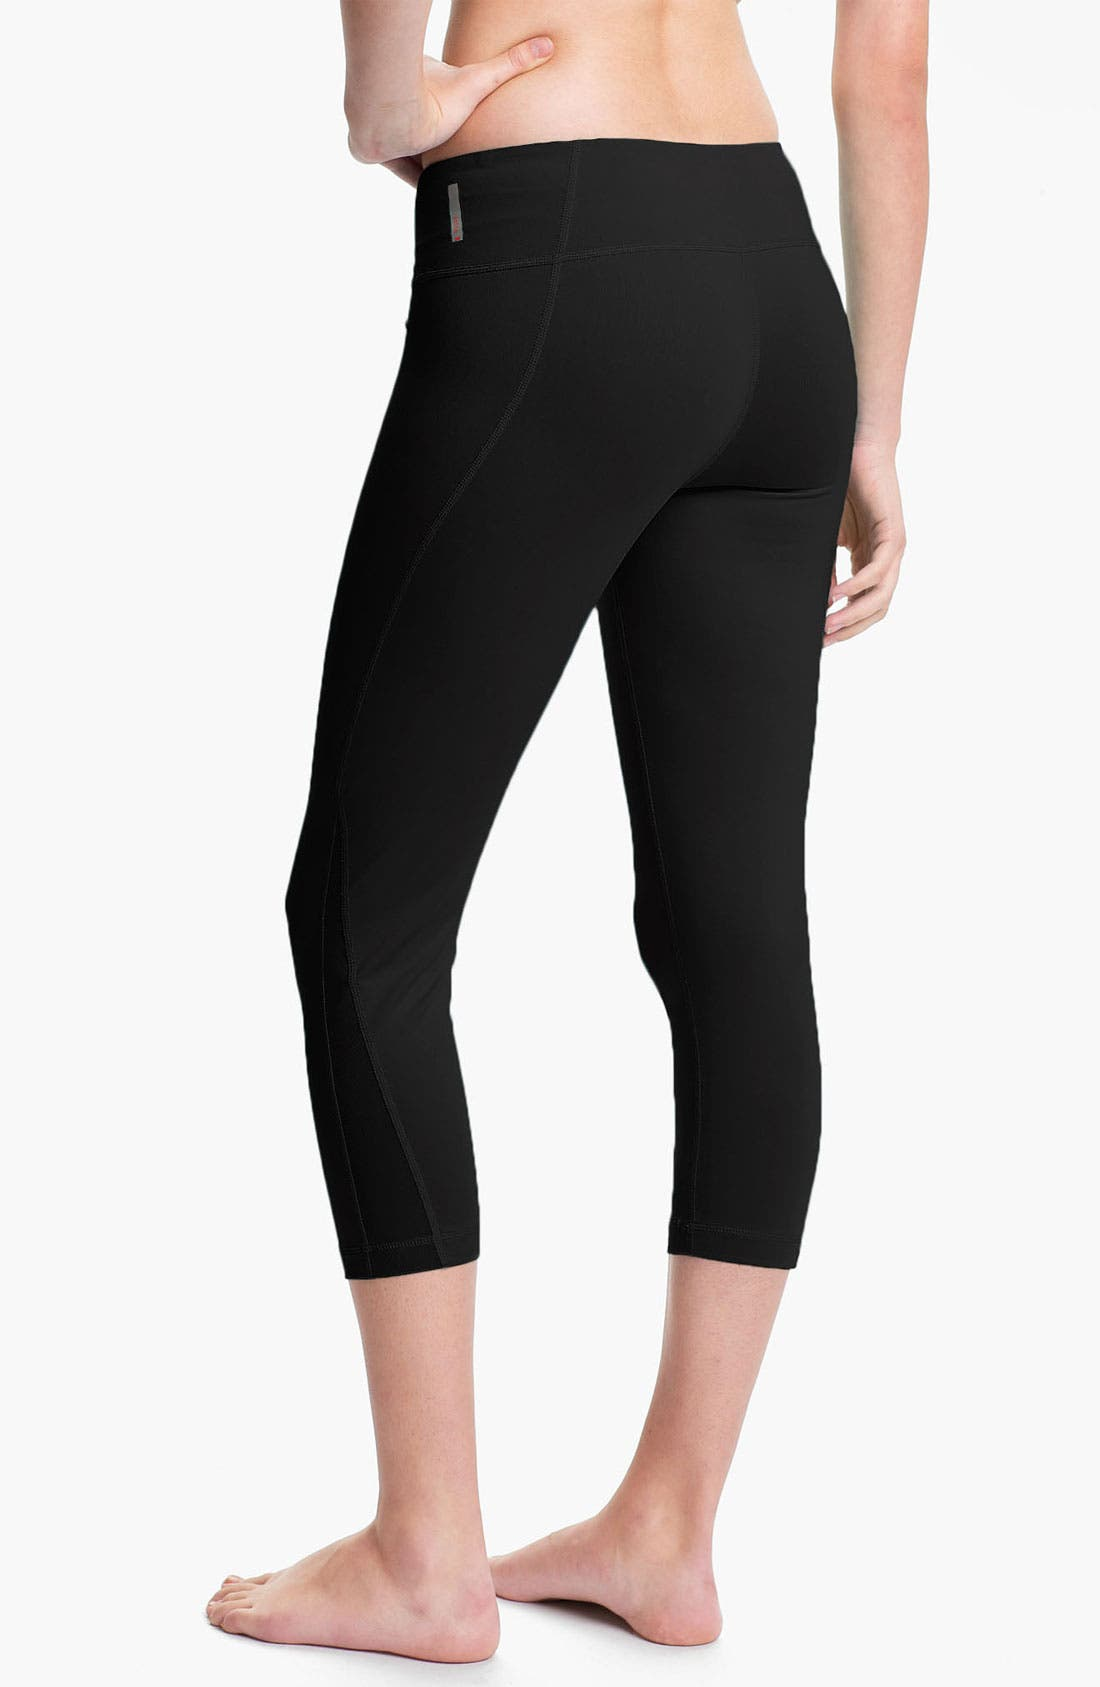 Alternate Image 2  - Zella 'Live In - Streamline' Mesh Inset Capri Leggings